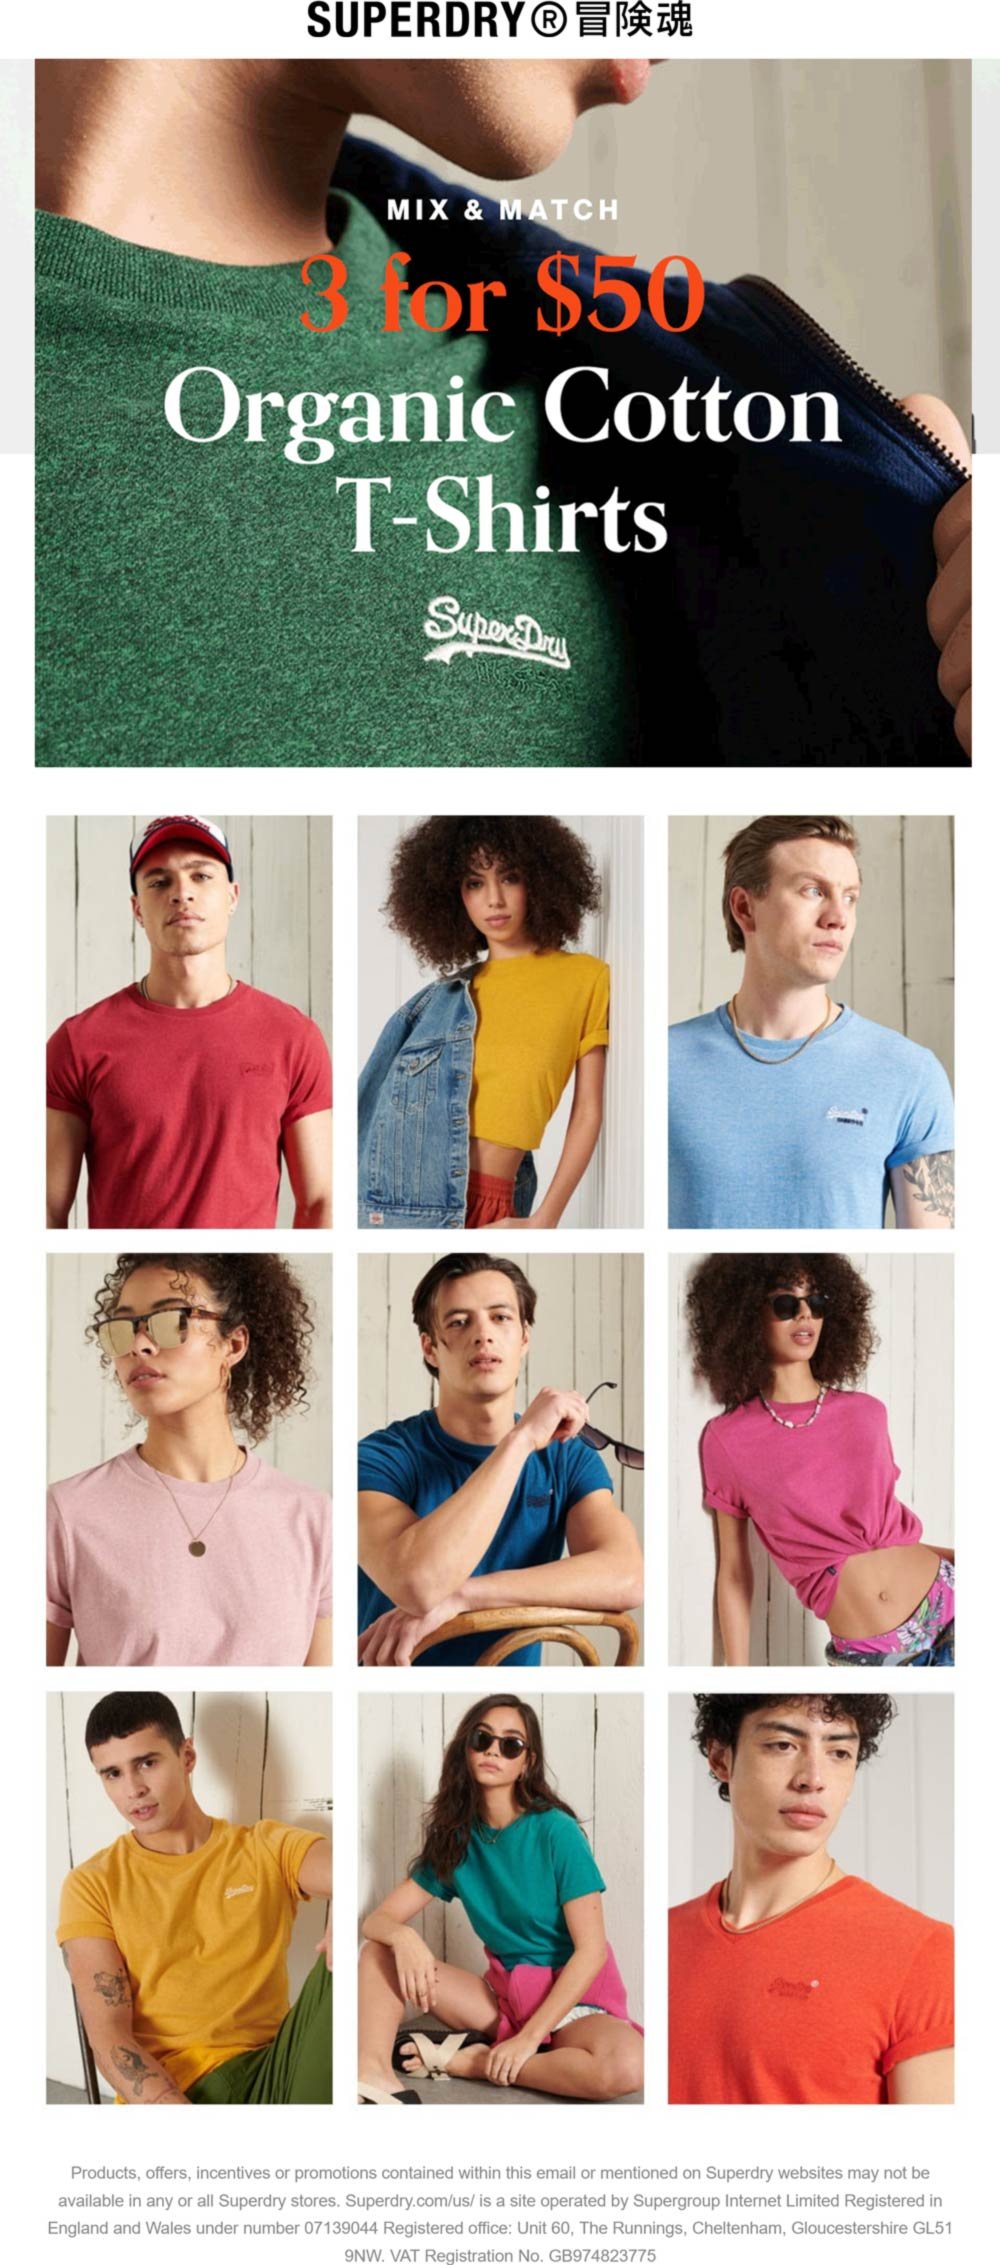 Superdry stores Coupon  T-shirts are 3 for $50 at Superdry #superdry